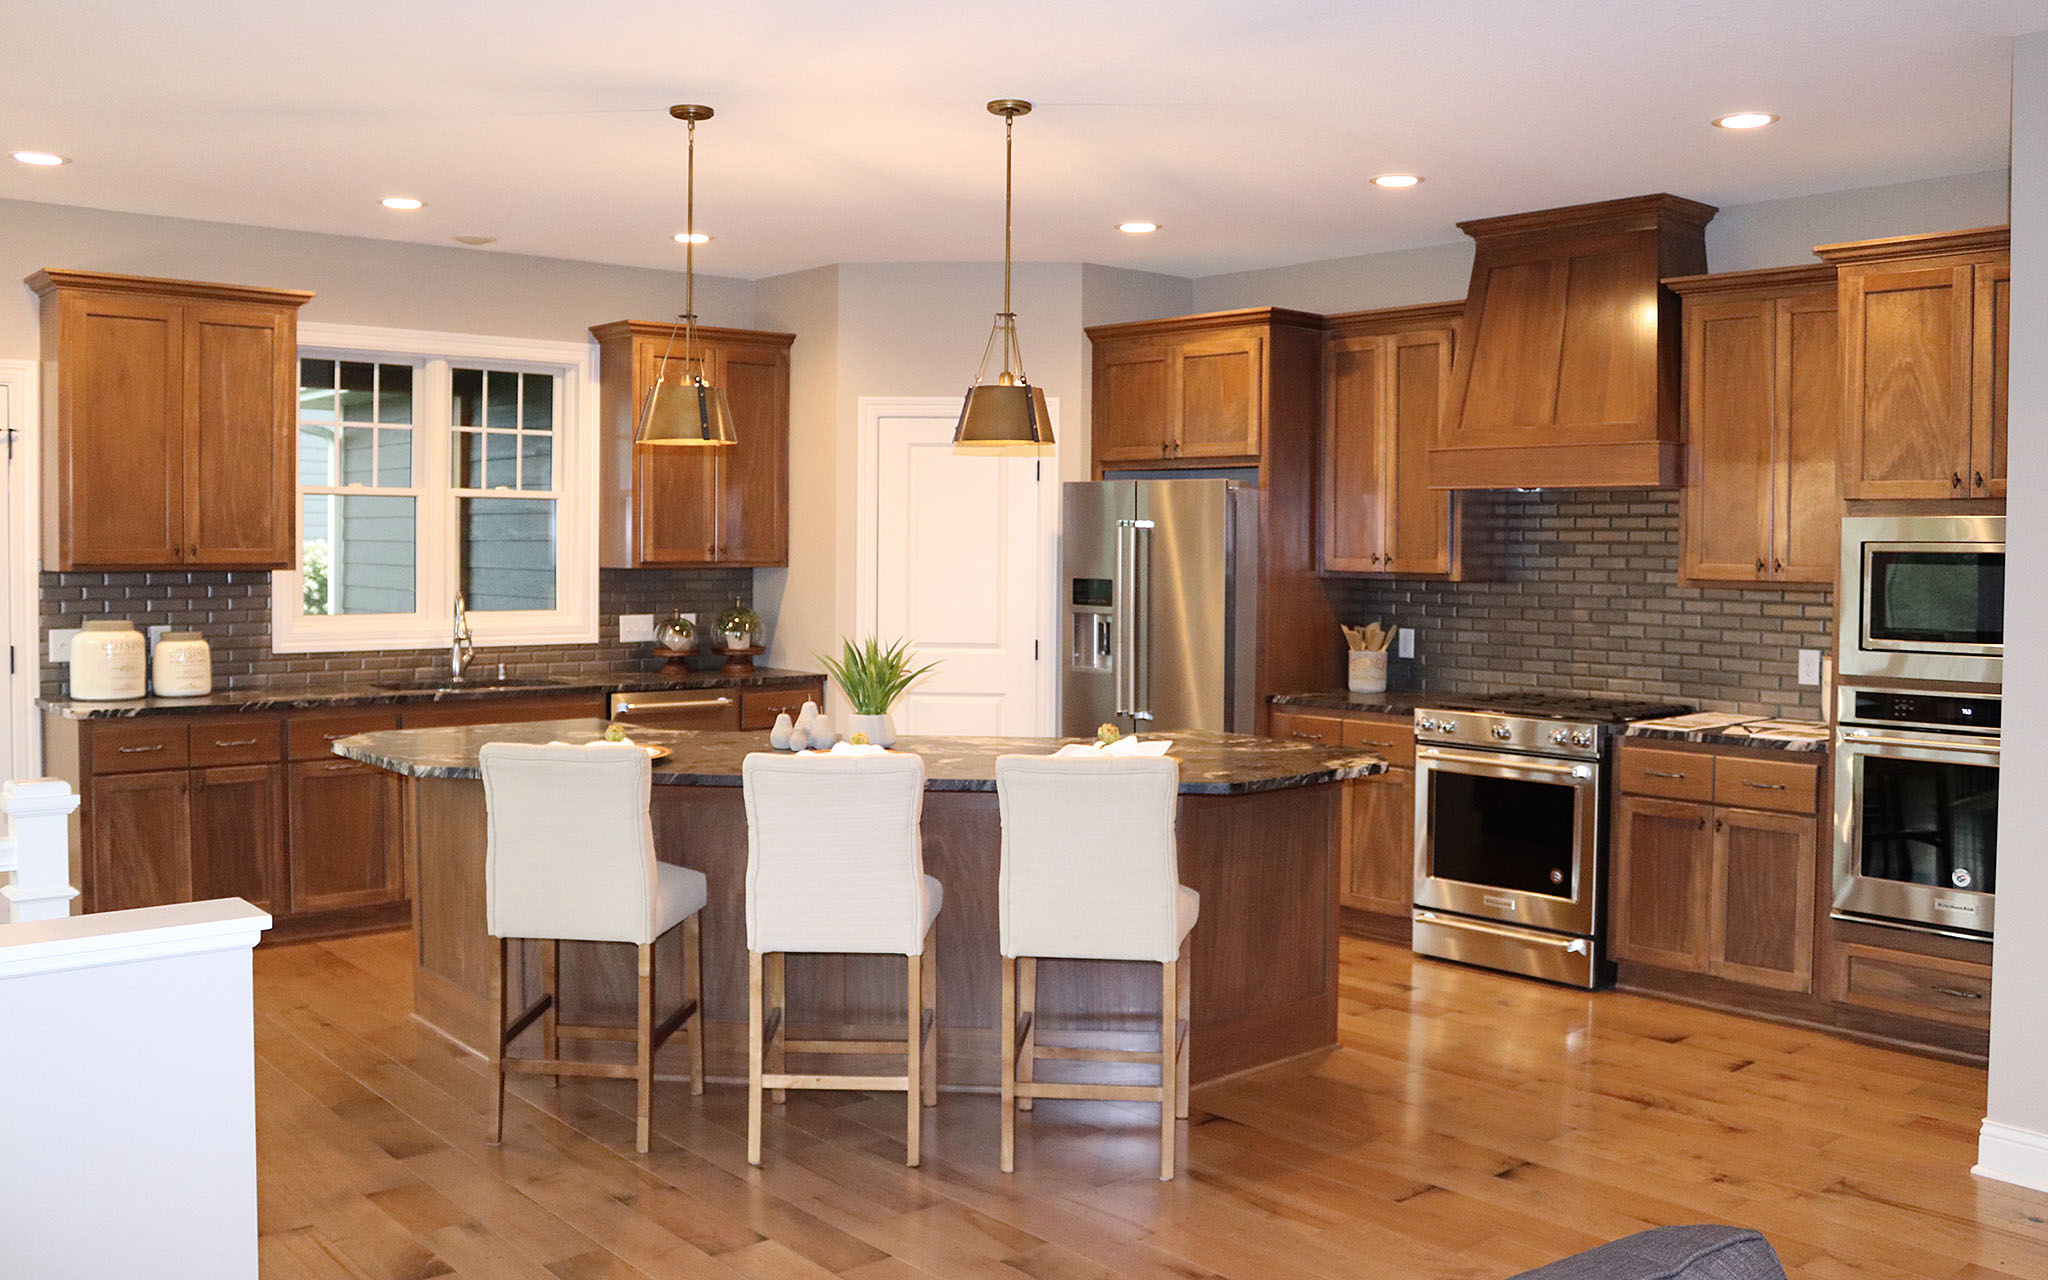 Eat-in gourmet kitchen with stainless steel wall oven, cooktop, walk-in pantry, granite countertops and stained poplar cabinets